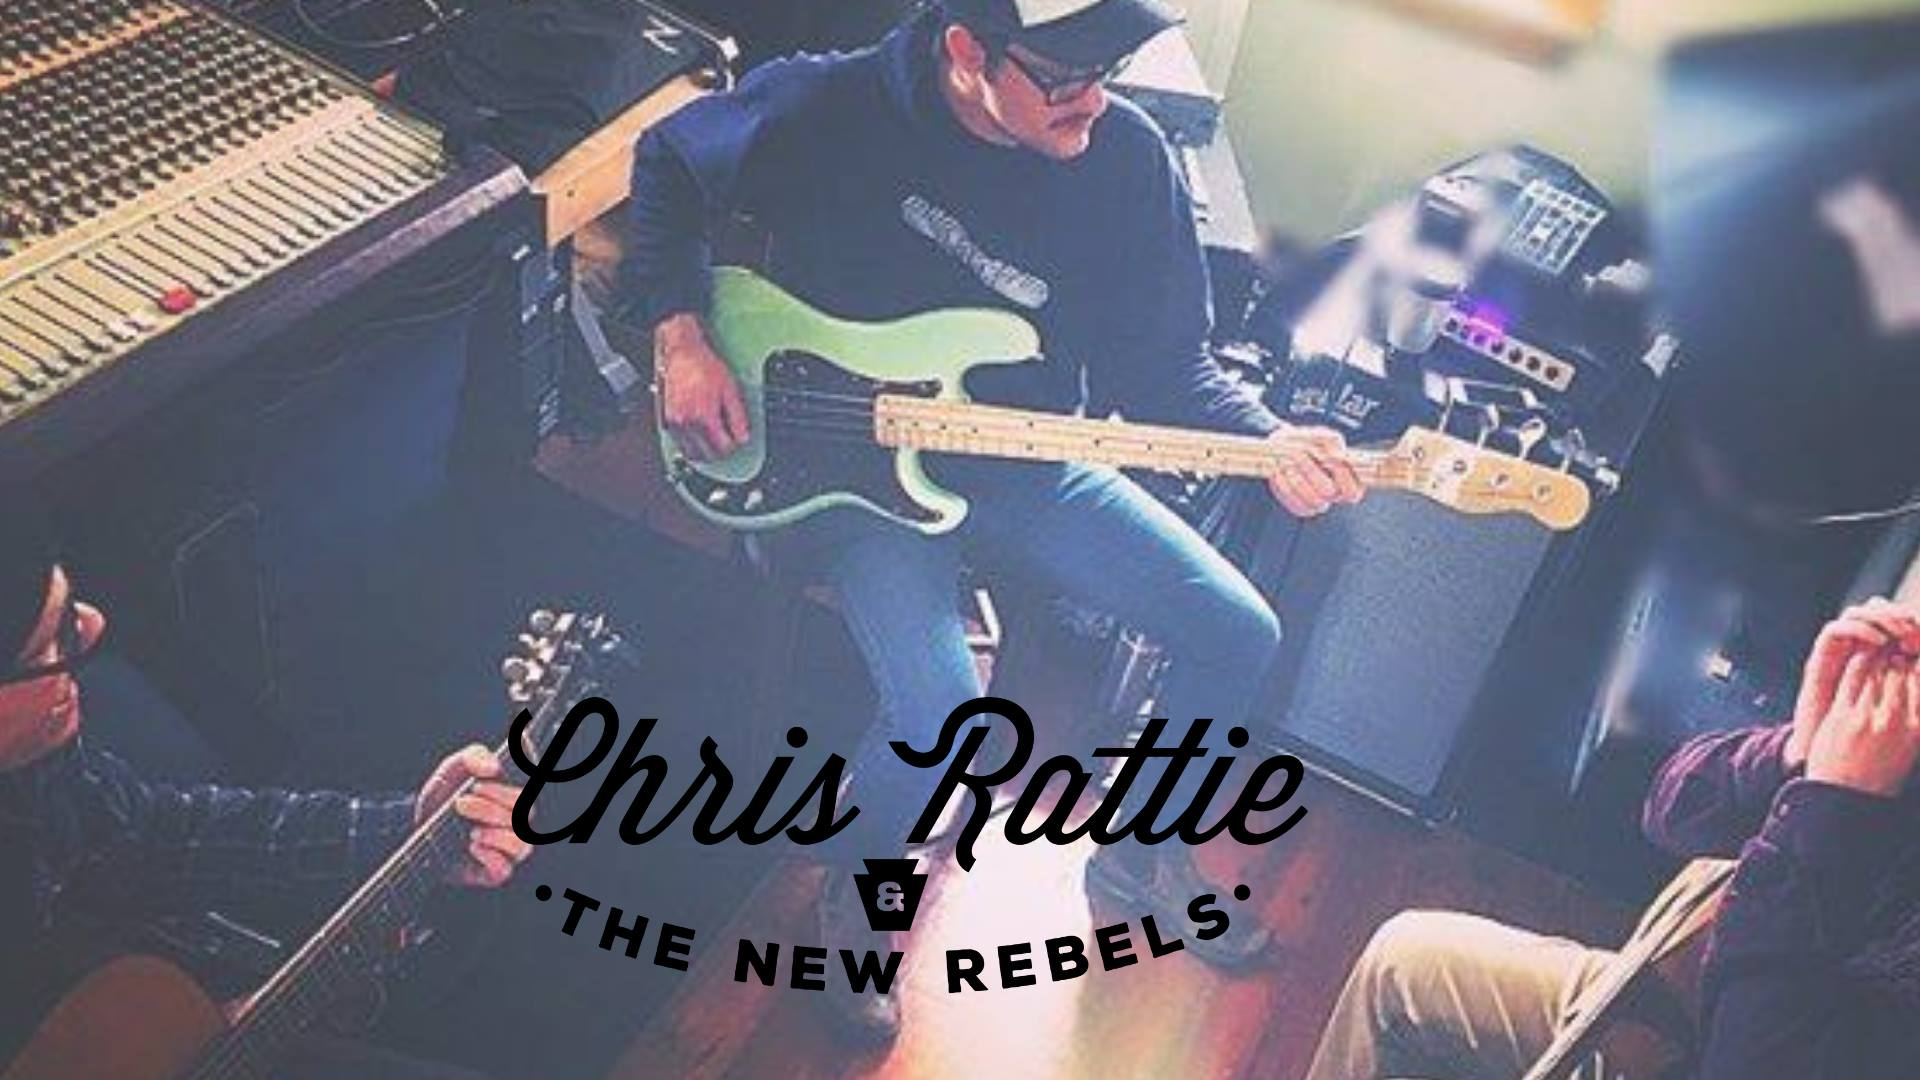 Chris Rattie & The New Rebels.jpg